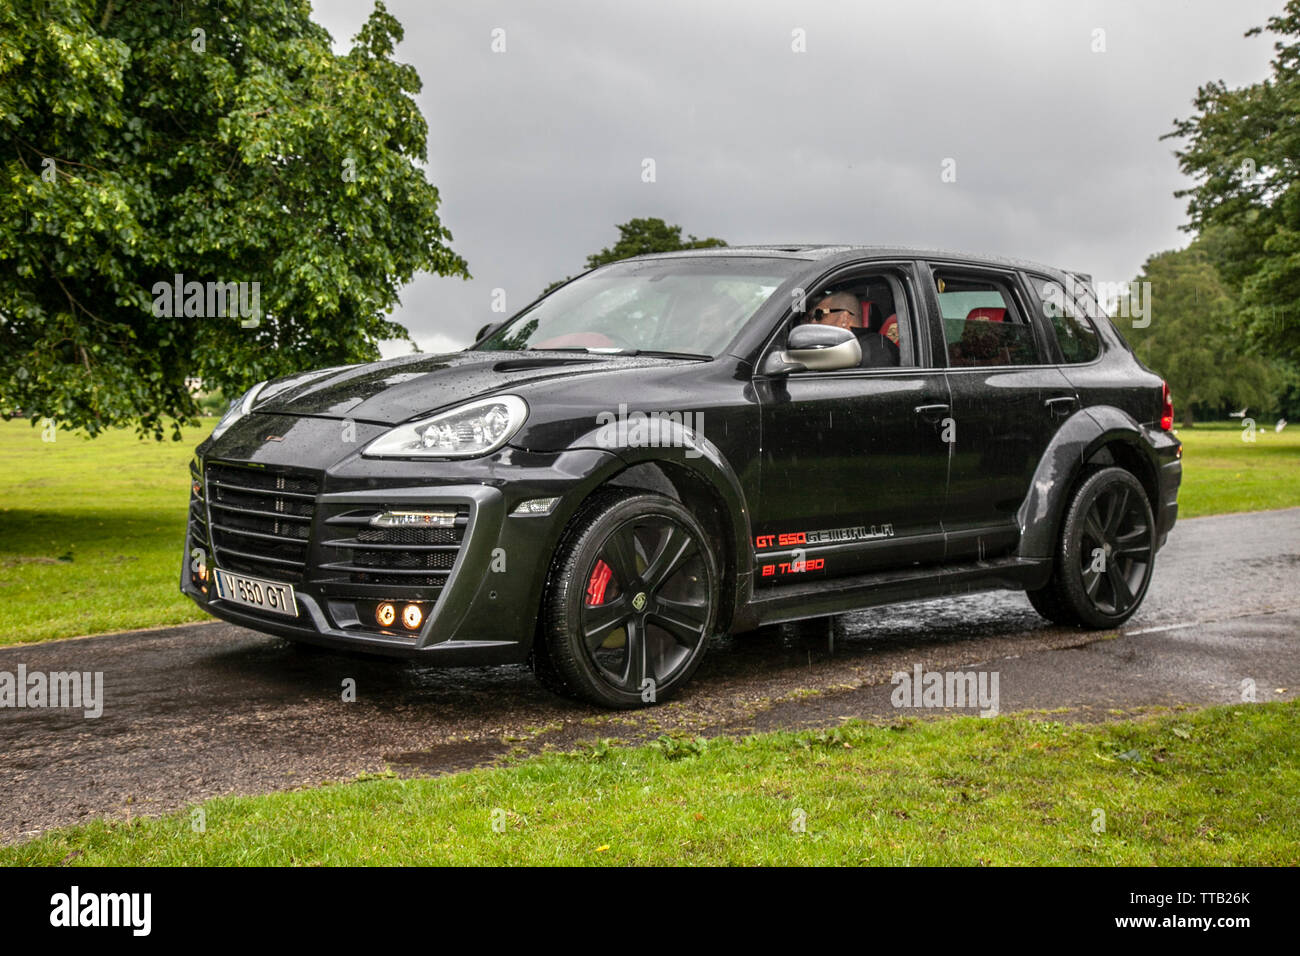 Porsche Cayenne Turbo High Resolution Stock Photography And Images Alamy